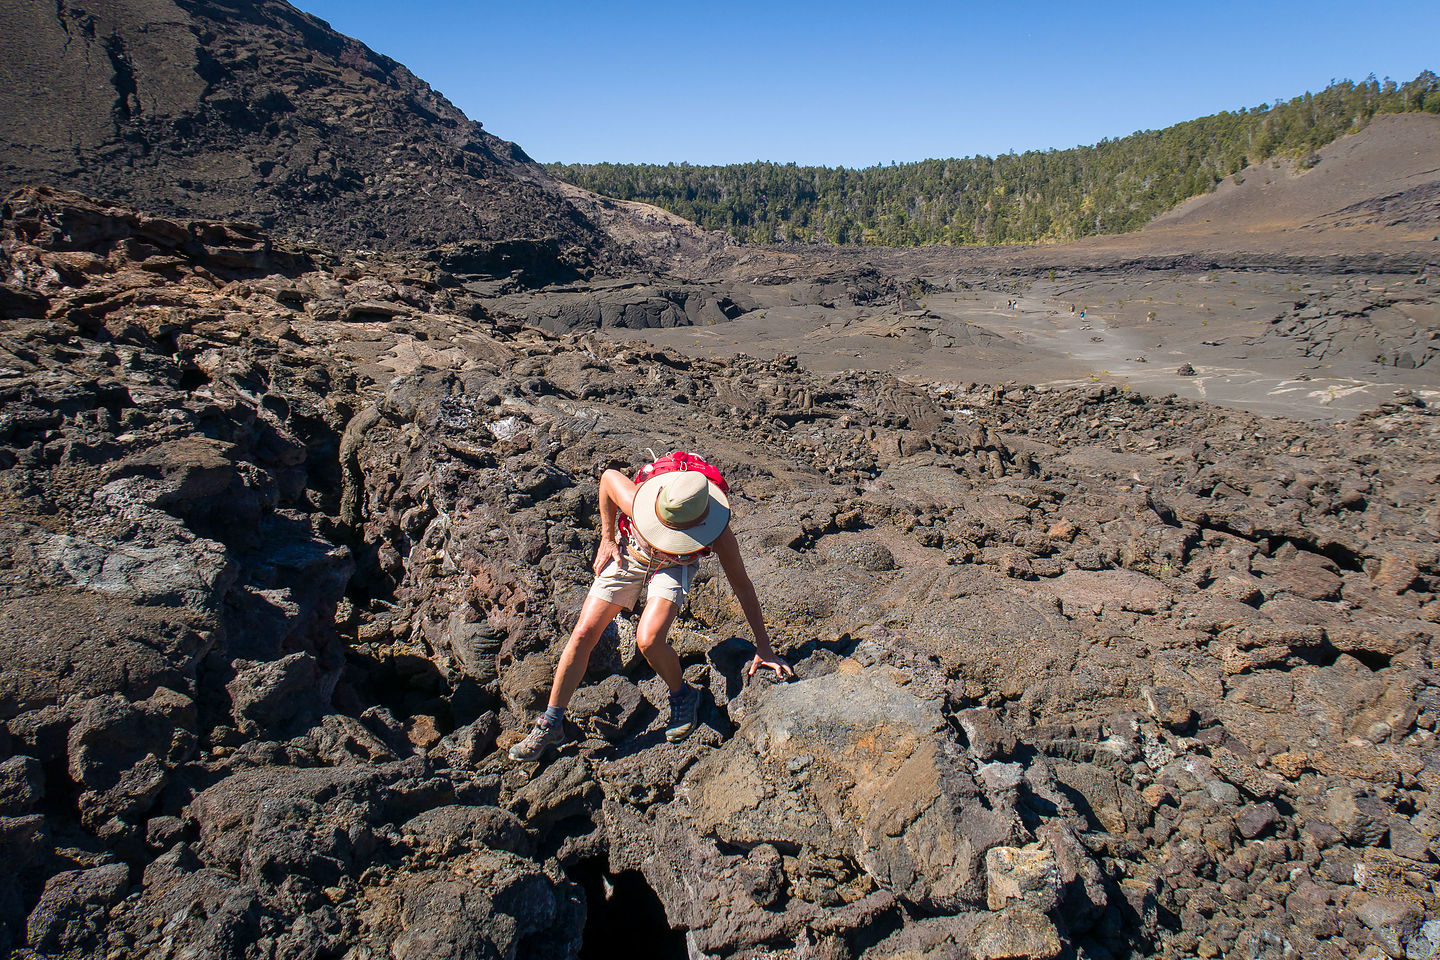 Lolo scrambling up to a Steam Vent in Kilauea Iki Crater